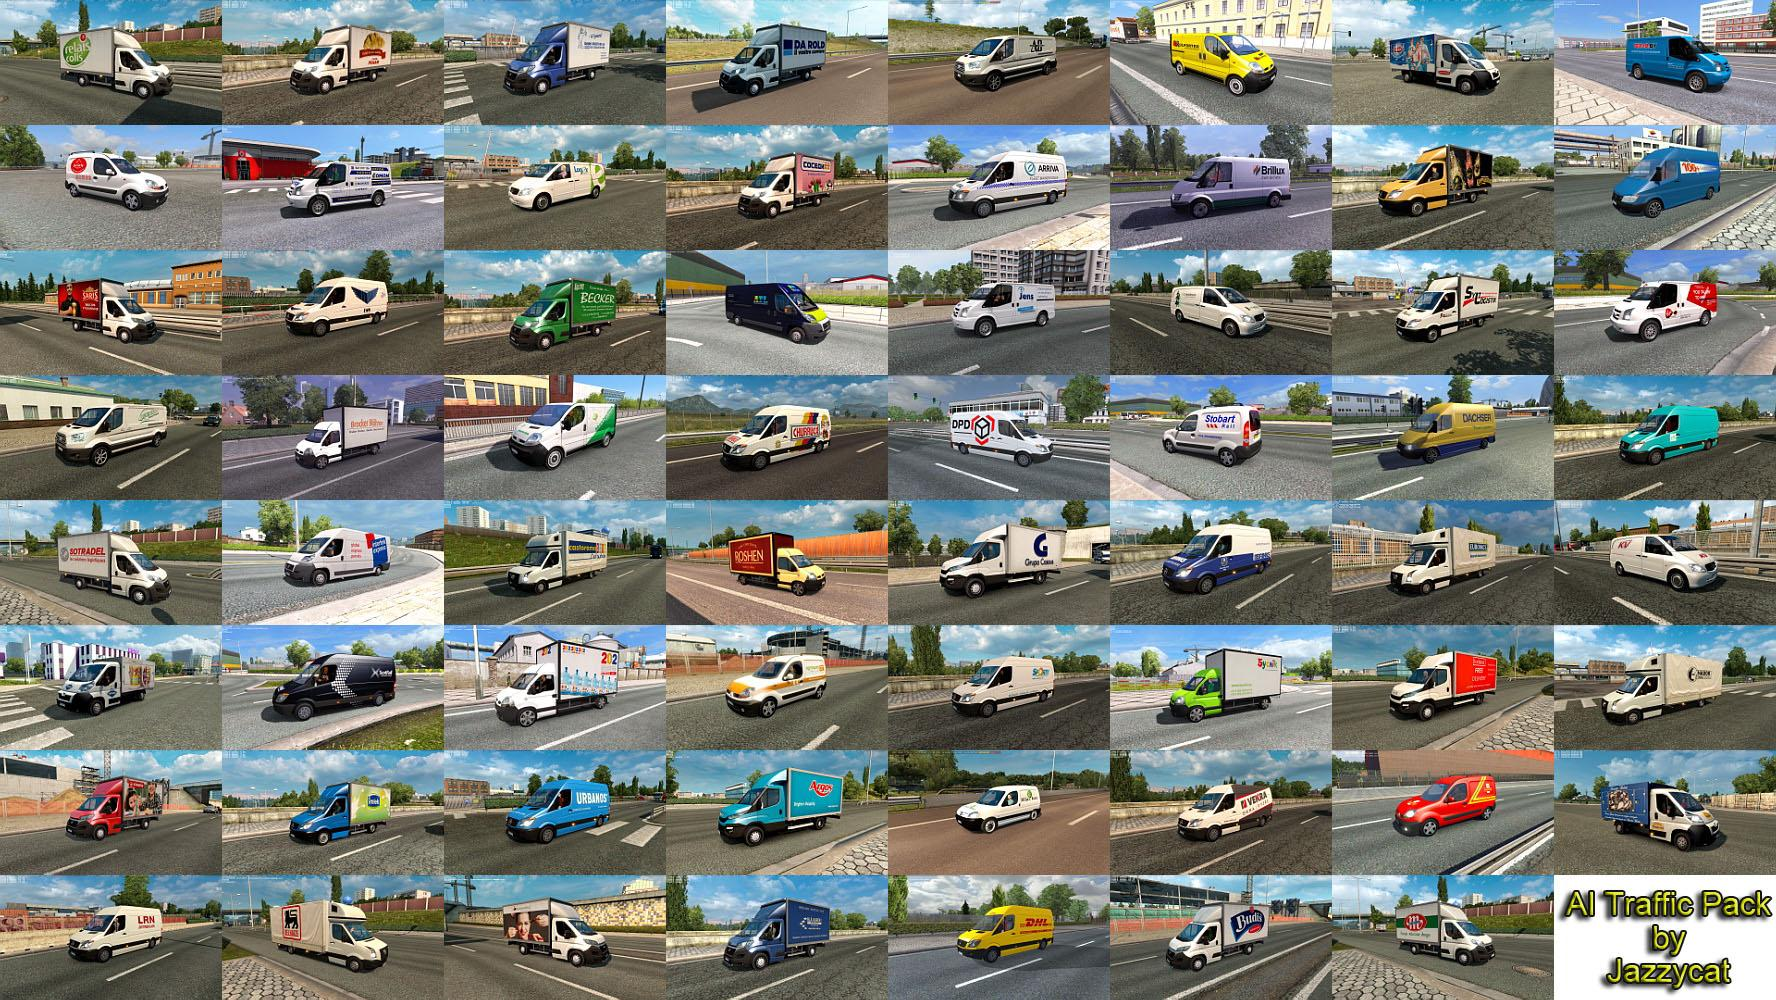 Ai Traffic Pack By Jazzycat V8 3 Traffic Mod For Ets2 Euro Truck Simulator 2 Mods